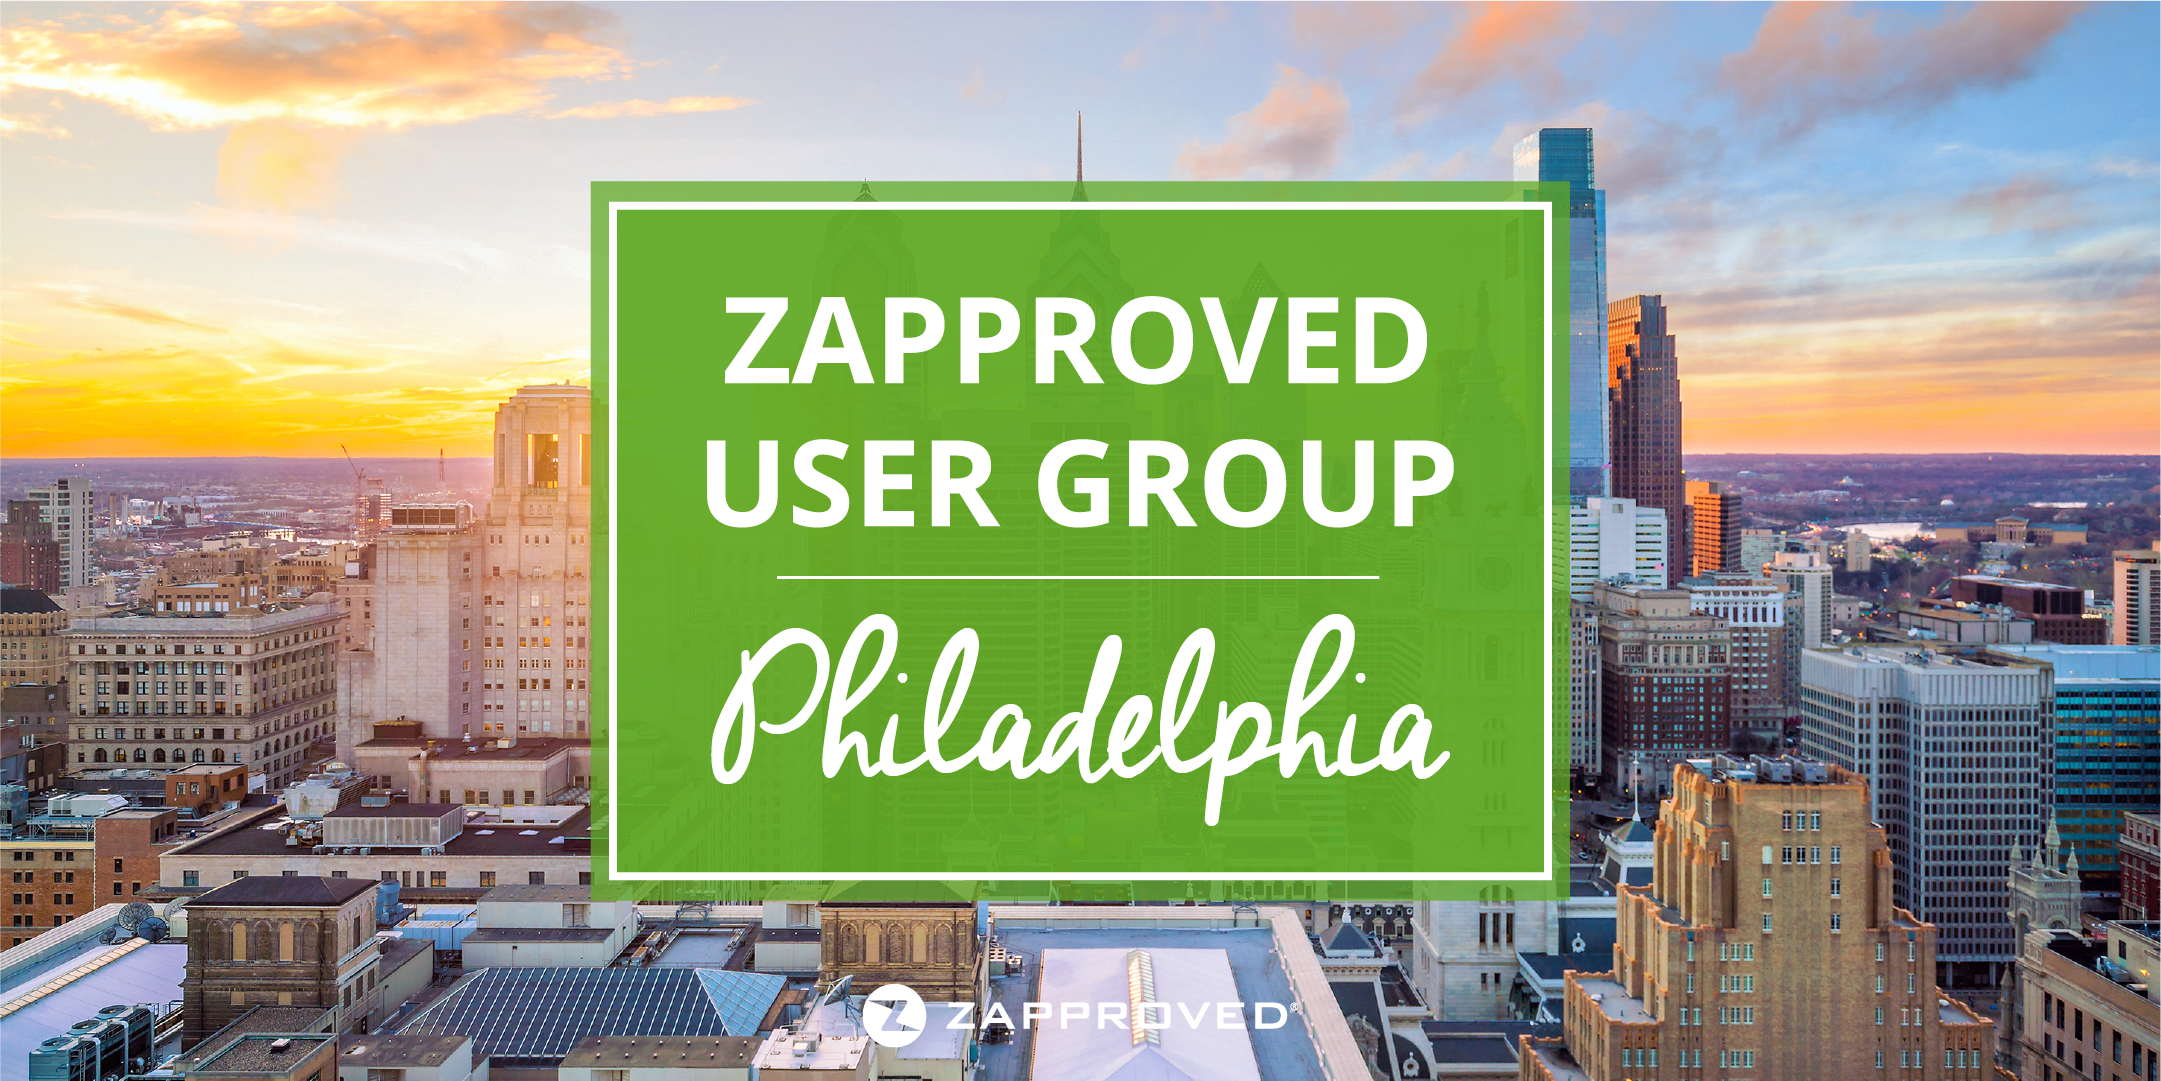 Zaproved User Group - Philadelphia